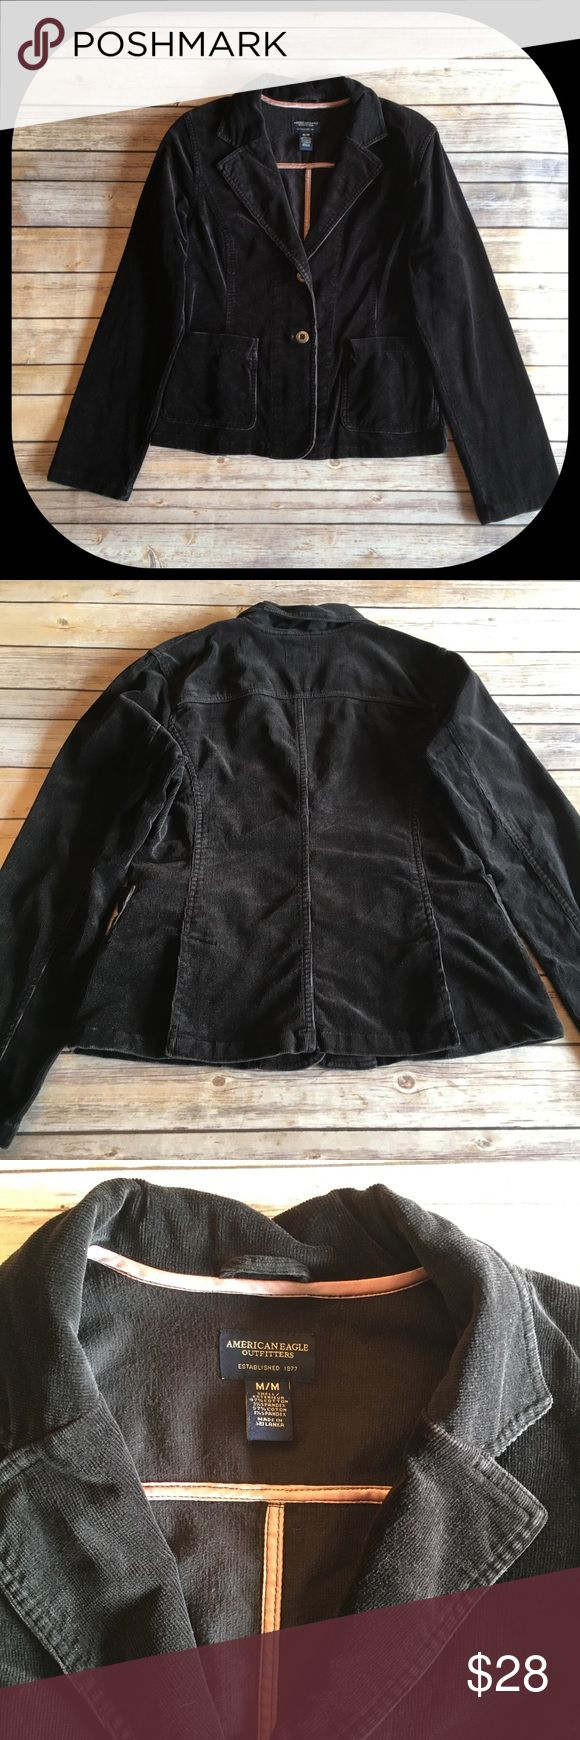 American Eagle Outfitters Corduroy Blazer Black corduroy blazer with two pockets American Eagle Outfitters Jackets & Coats Blazers